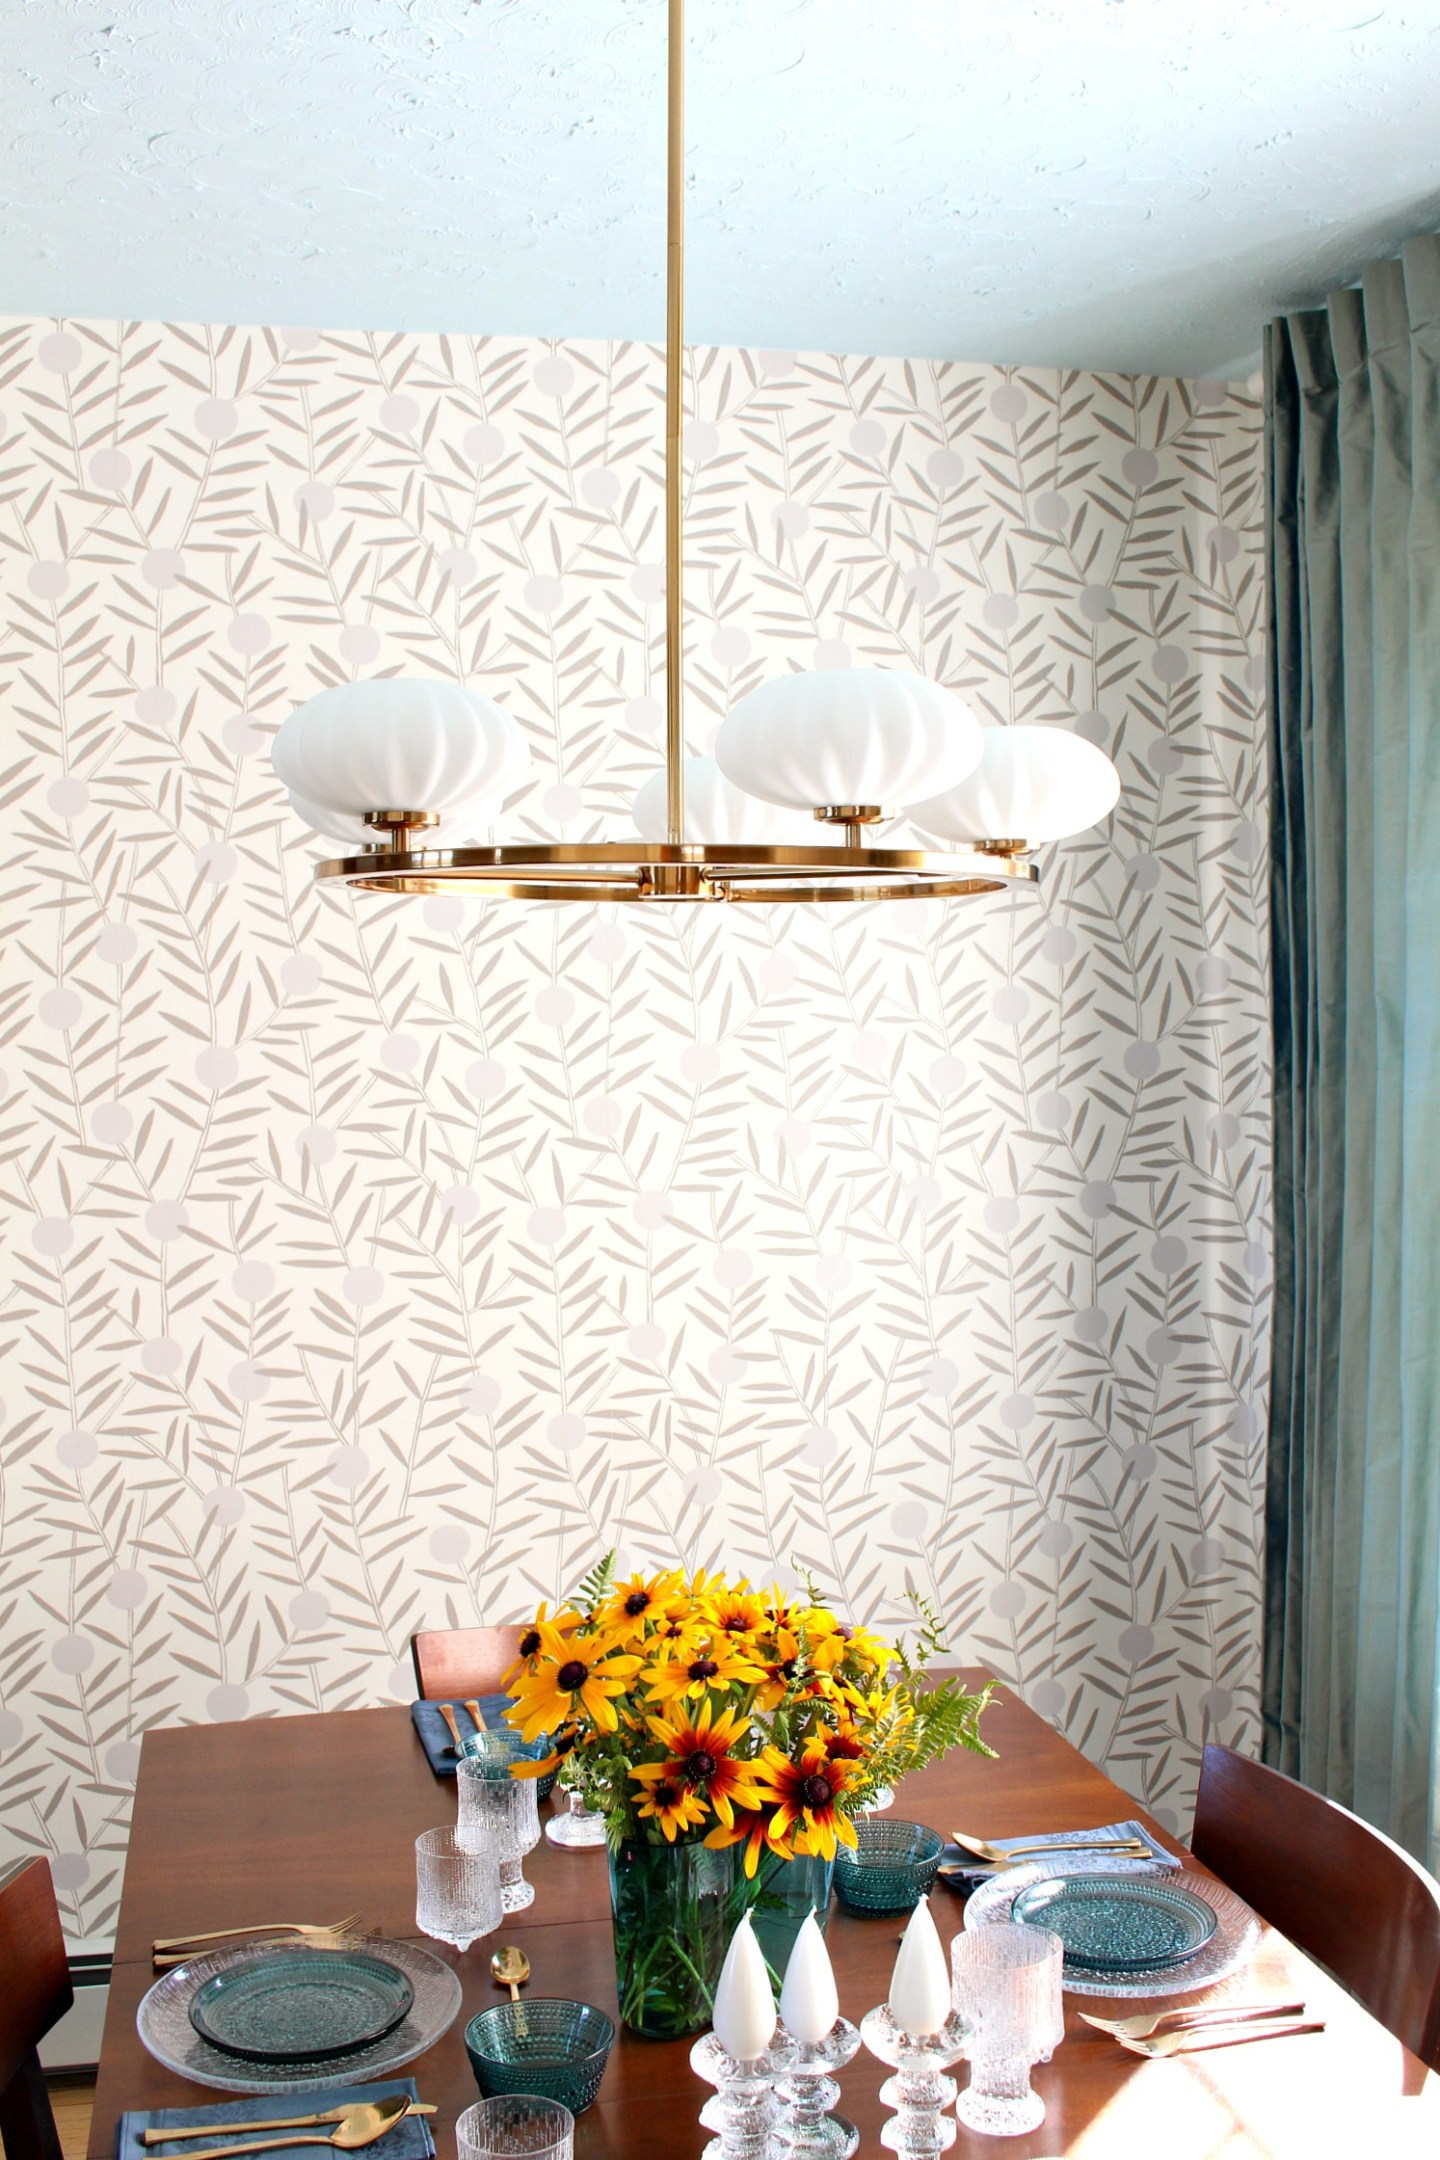 Hygge & West Wallpaper Instructions